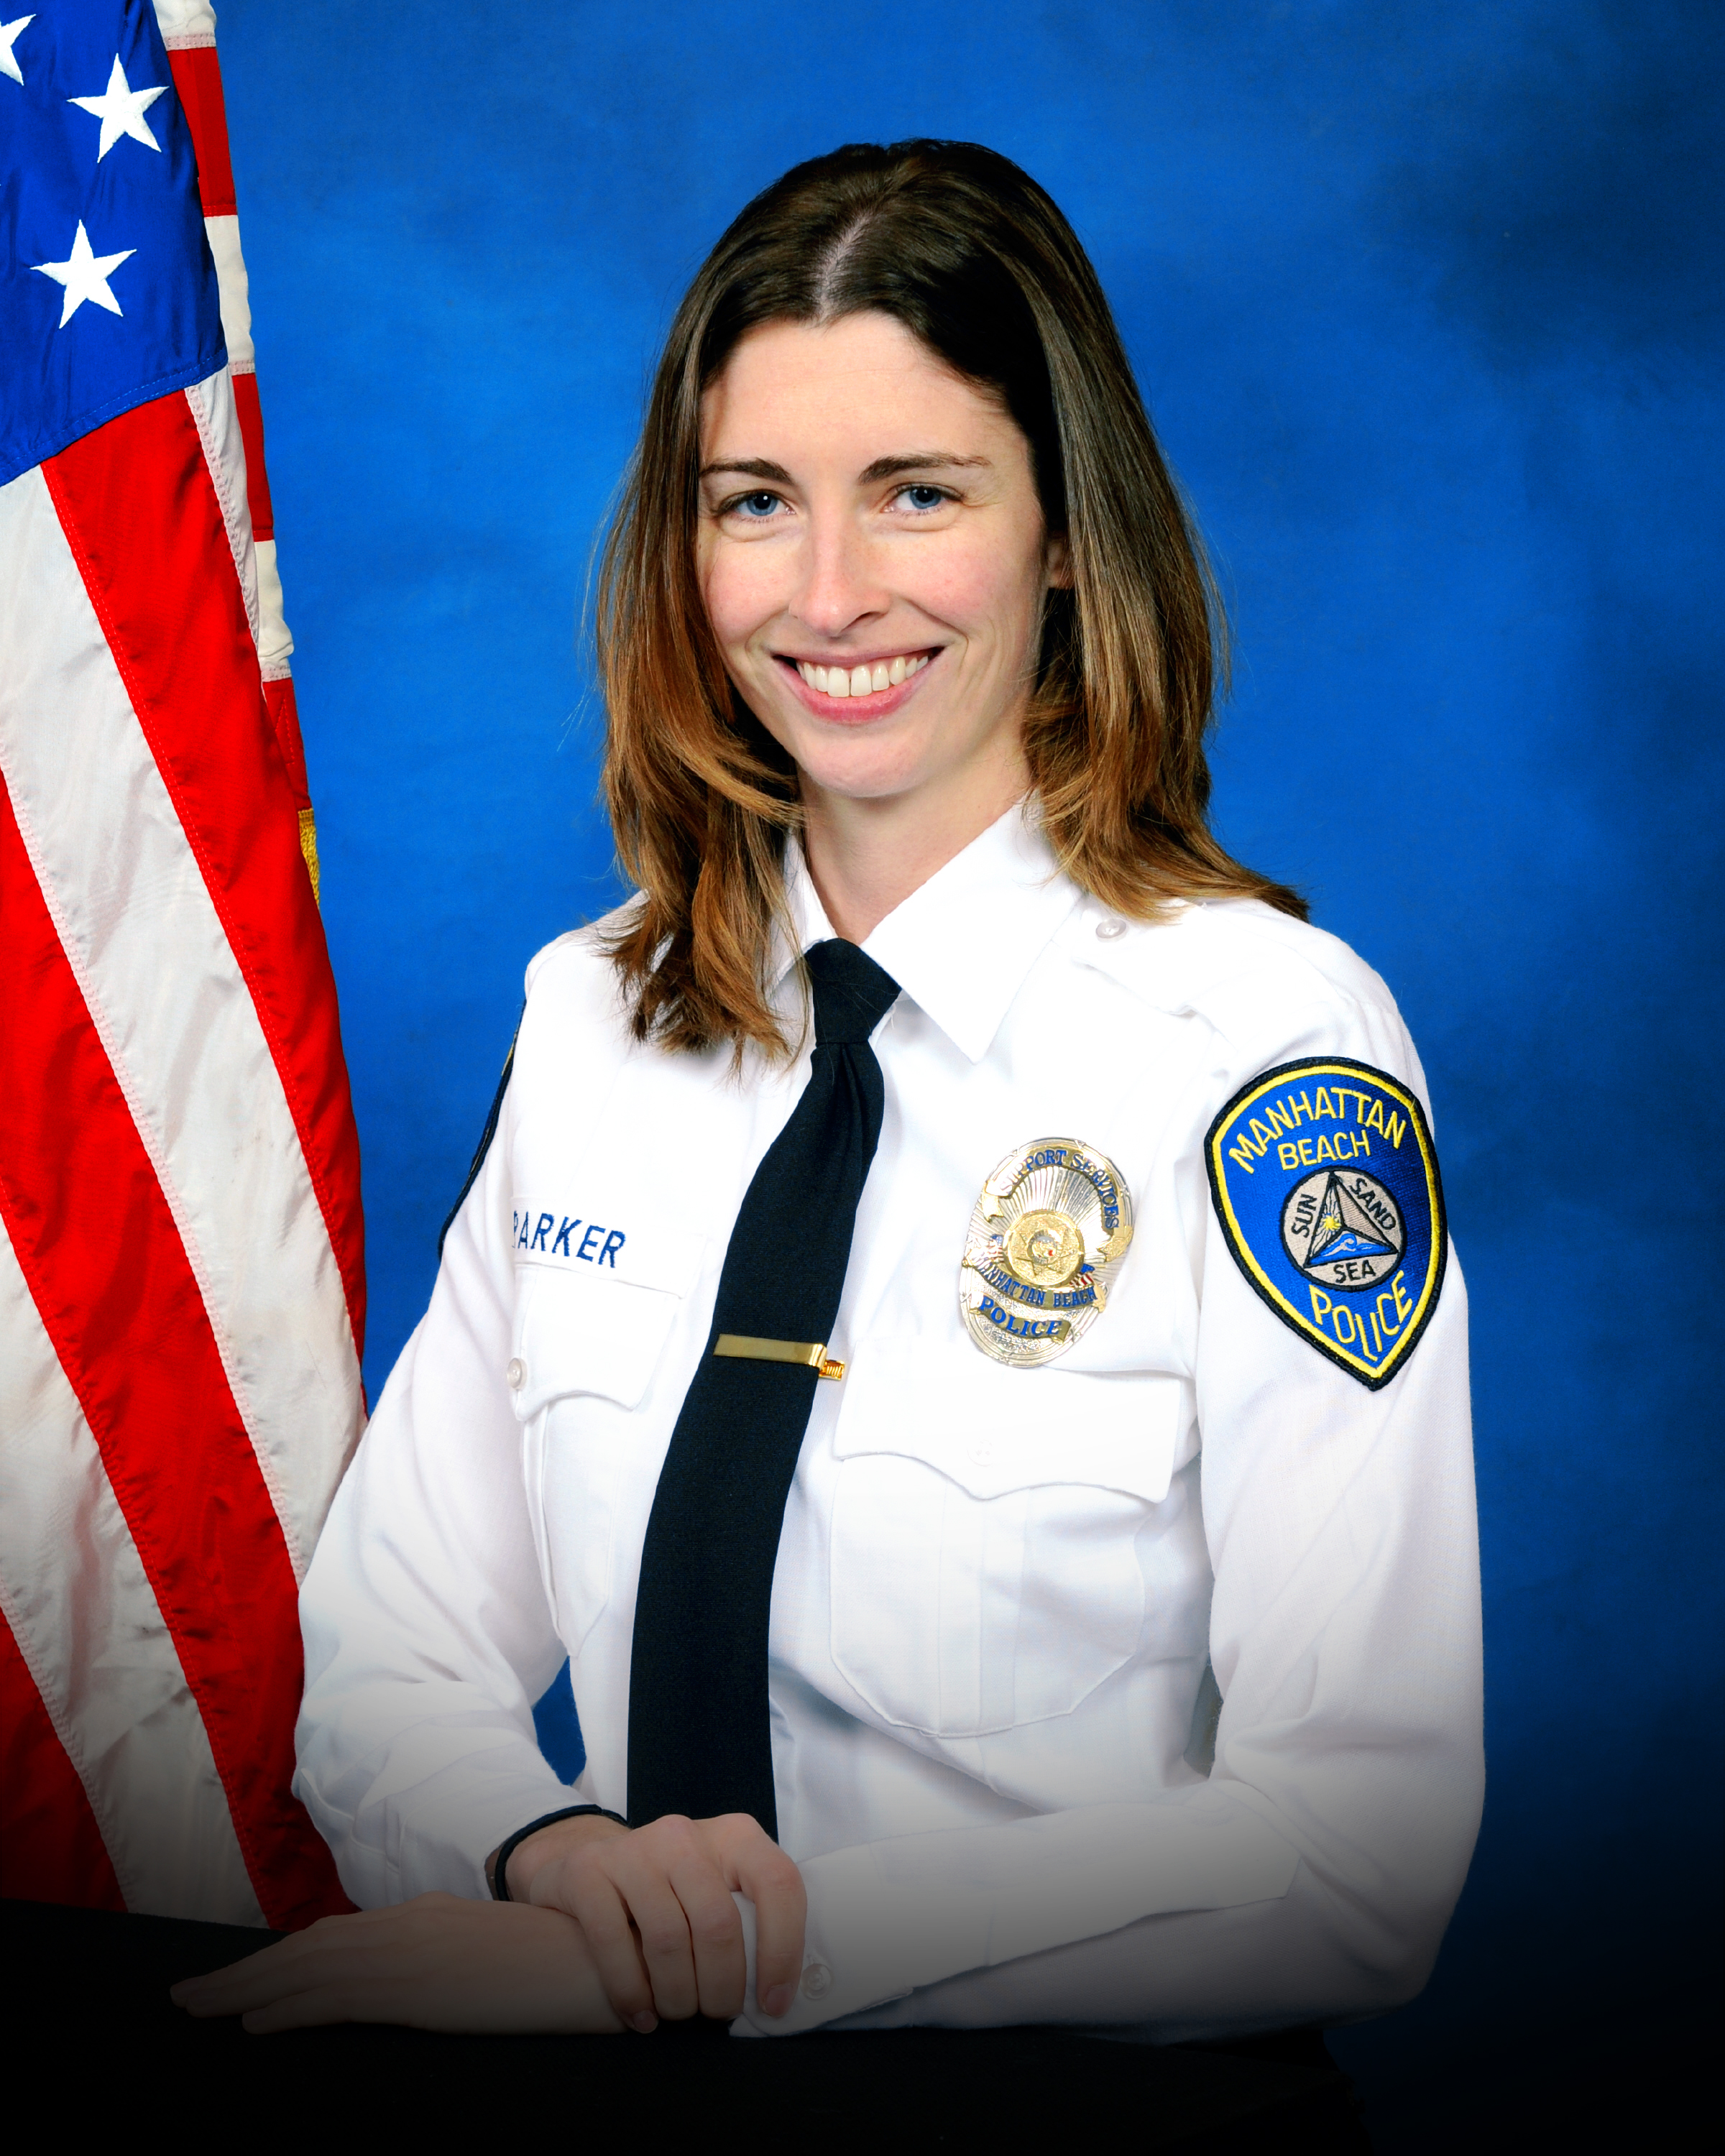 "<div class=""meta image-caption""><div class=""origin-logo origin-image none""><span>none</span></div><span class=""caption-text"">Rachael Parker, an employee of the Manhattan Beach Police Department. (Manhattan Beach Police Department)</span></div>"